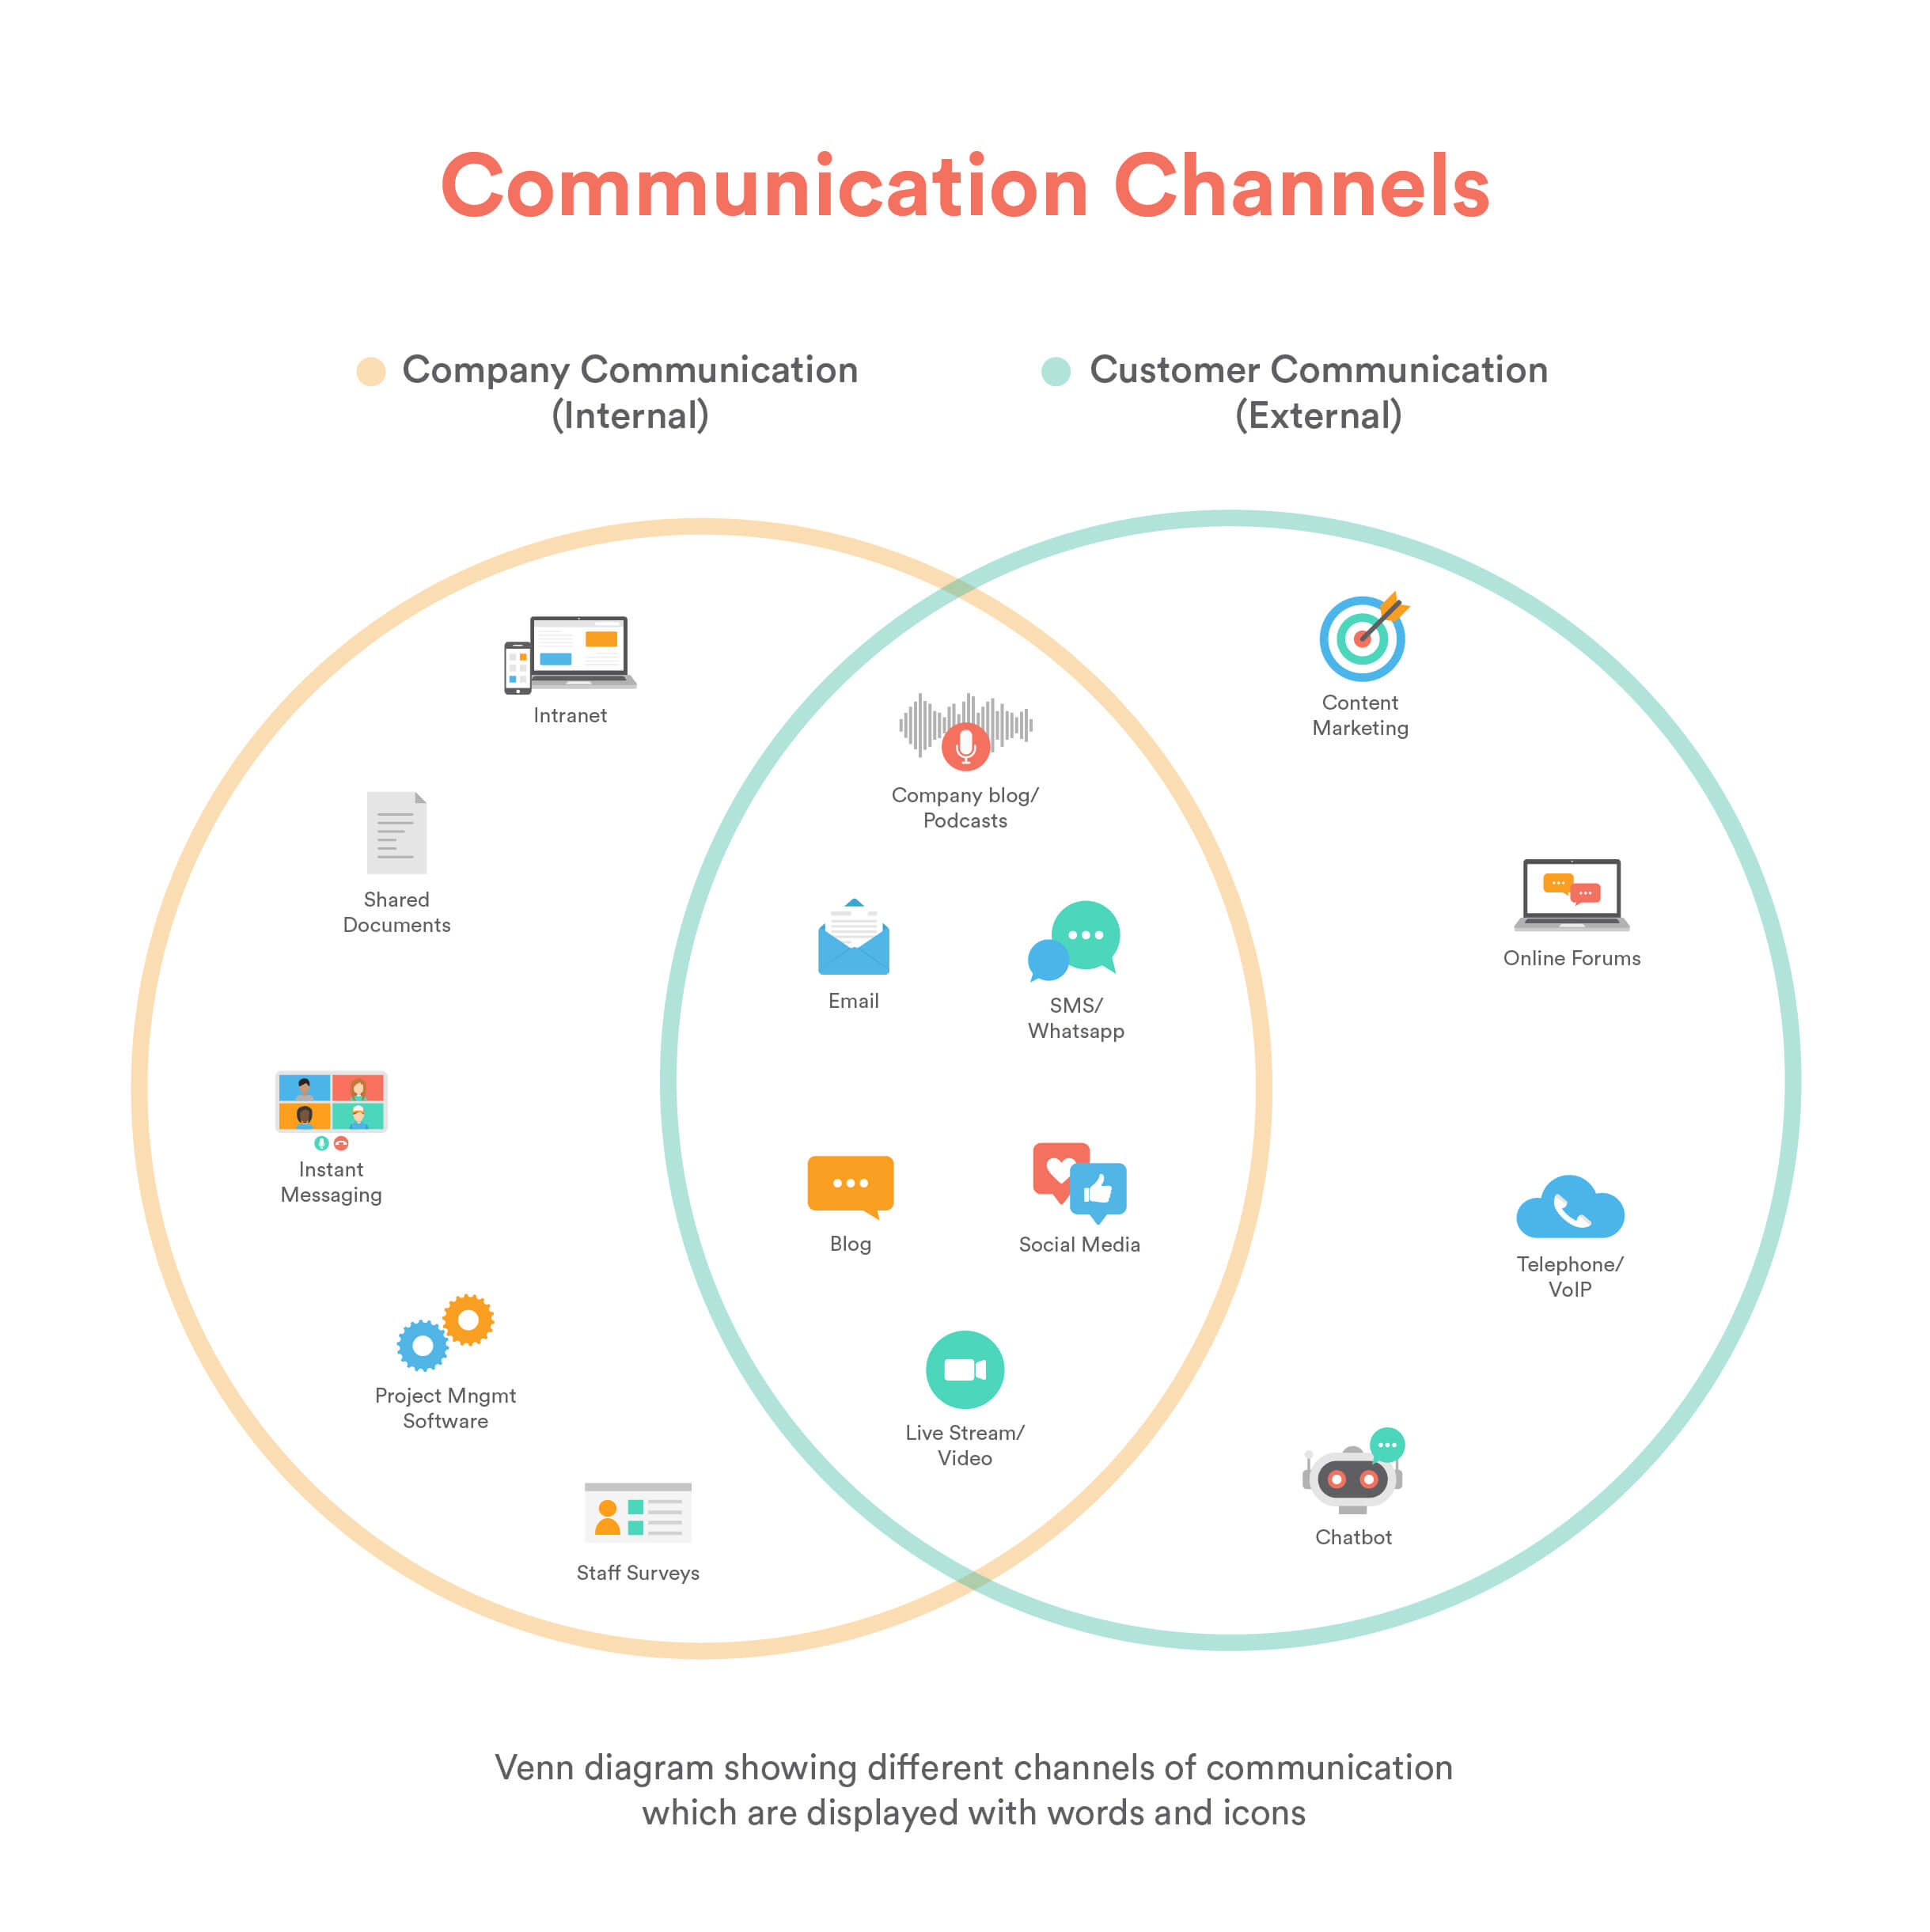 Diagram showing the communication channels used by businesses